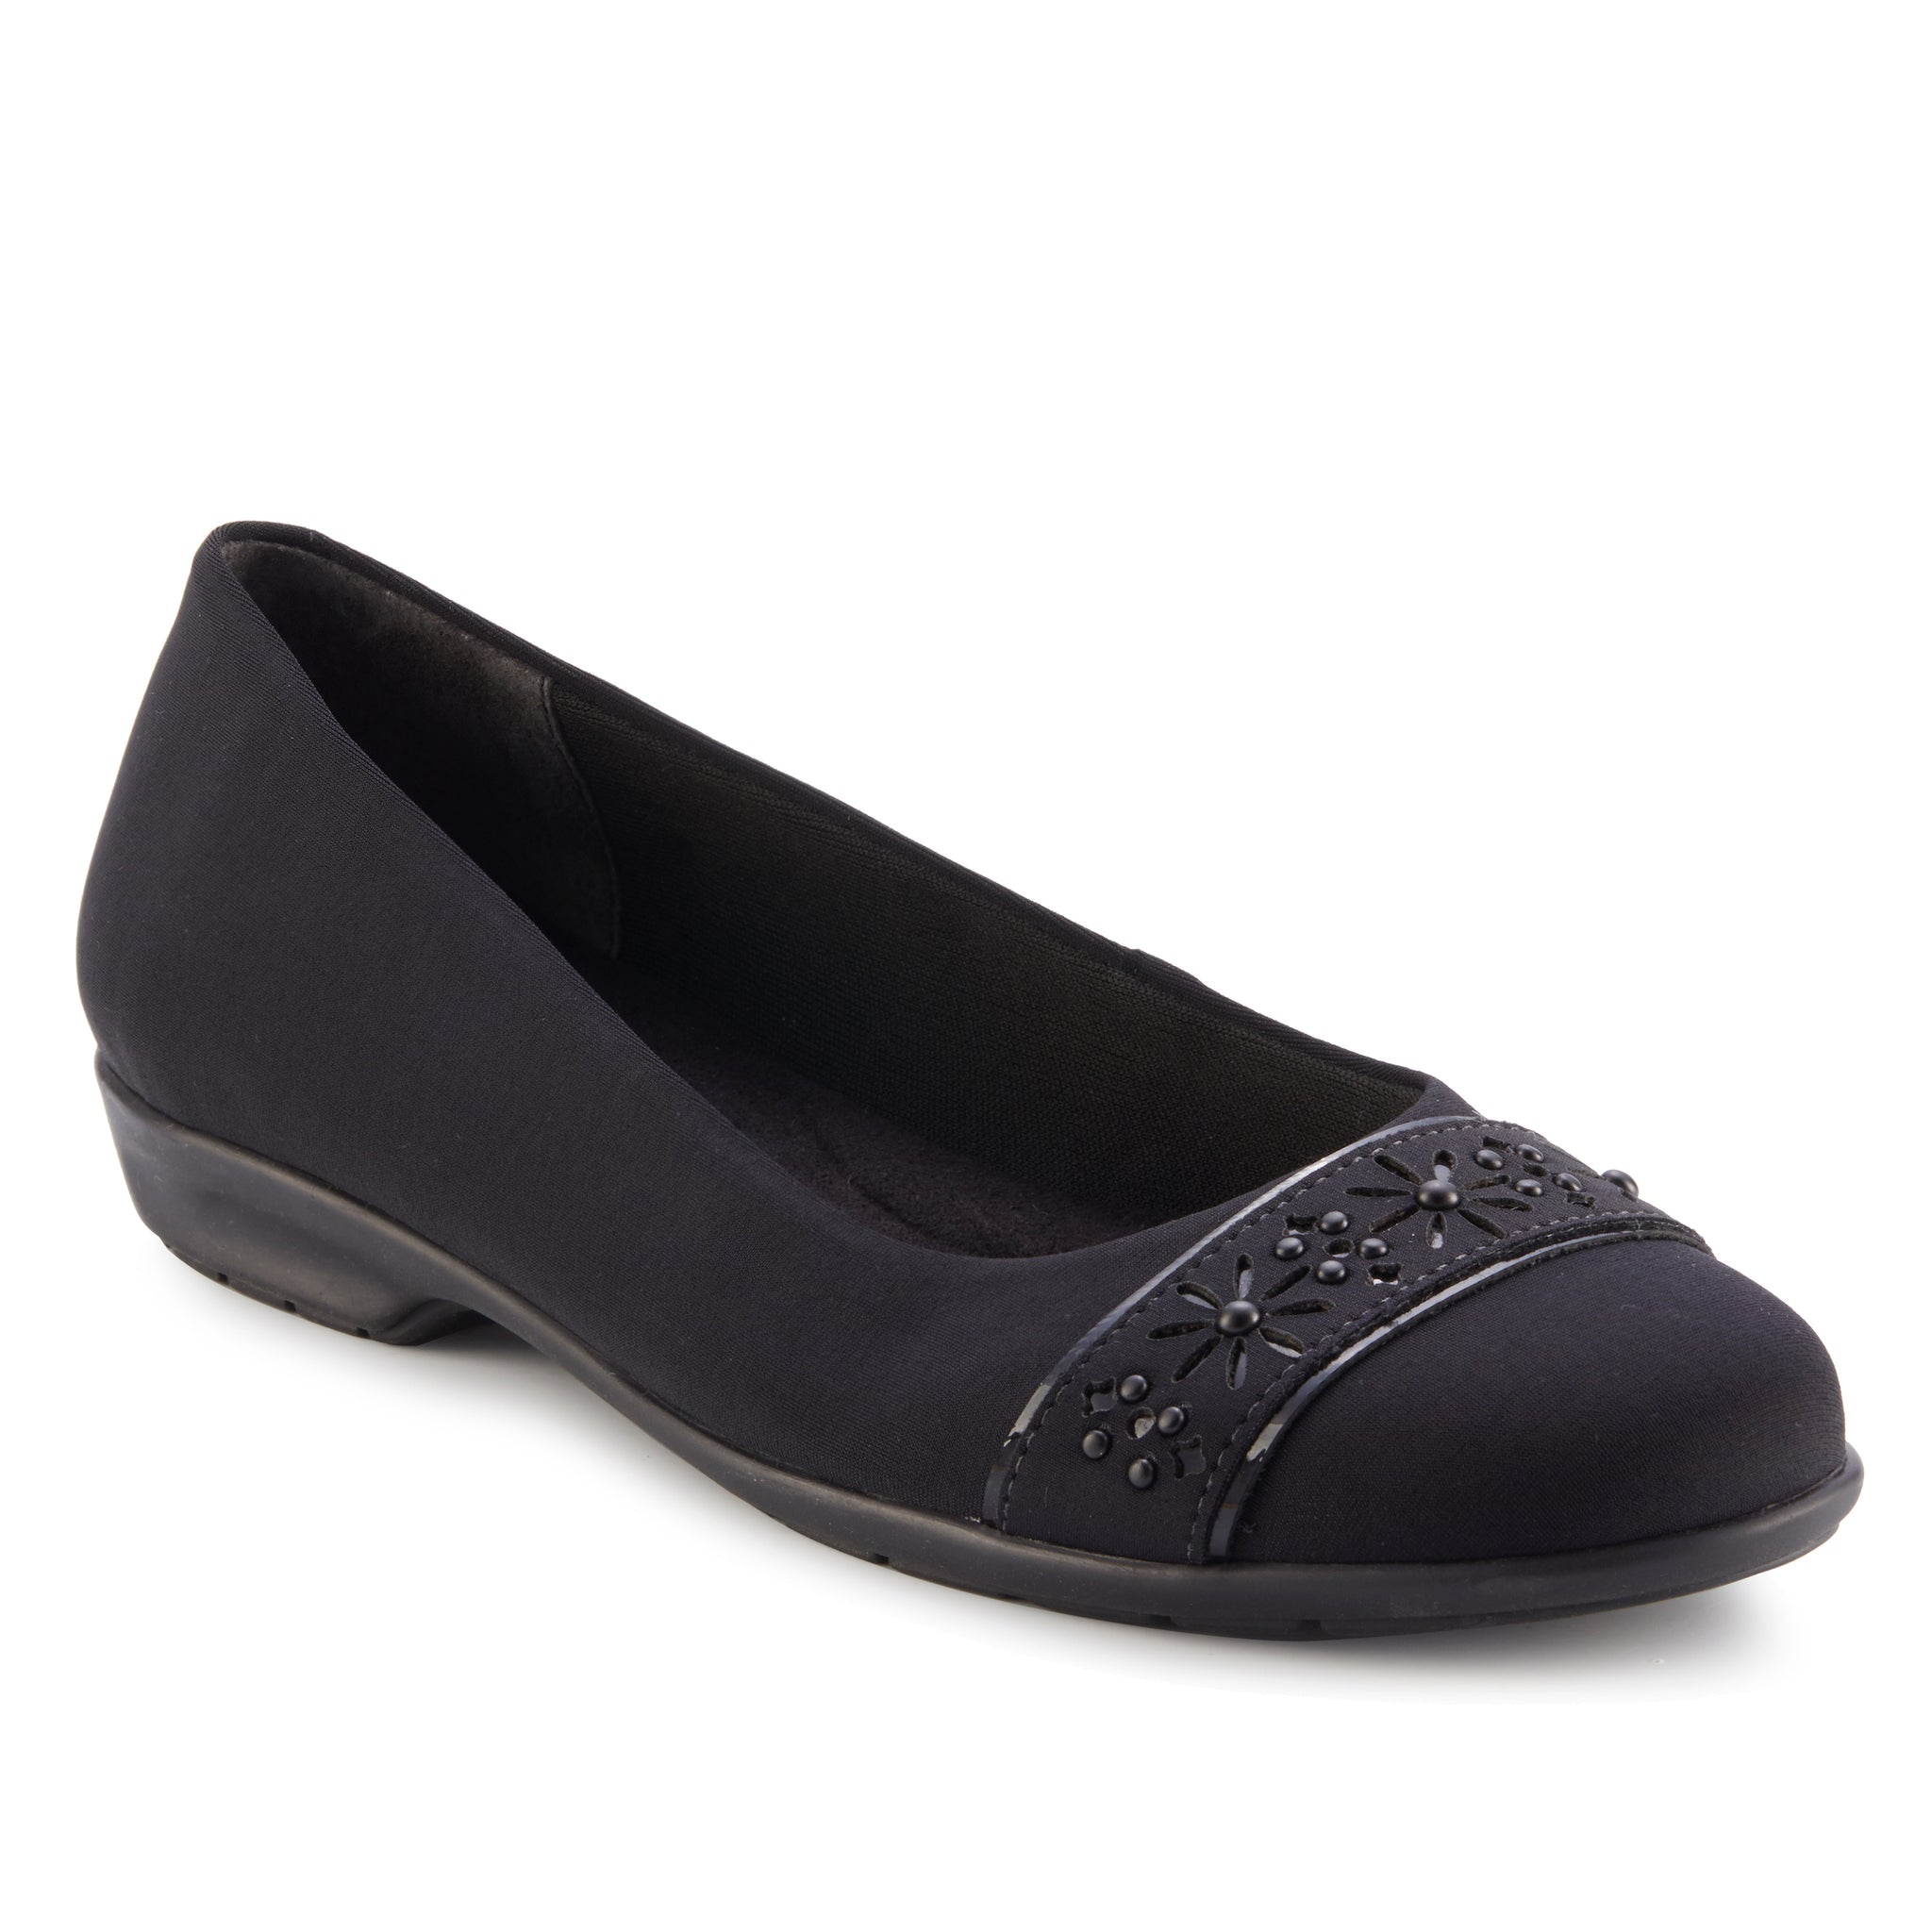 679bee11a493 Francine: Black Micro/Patent NEW